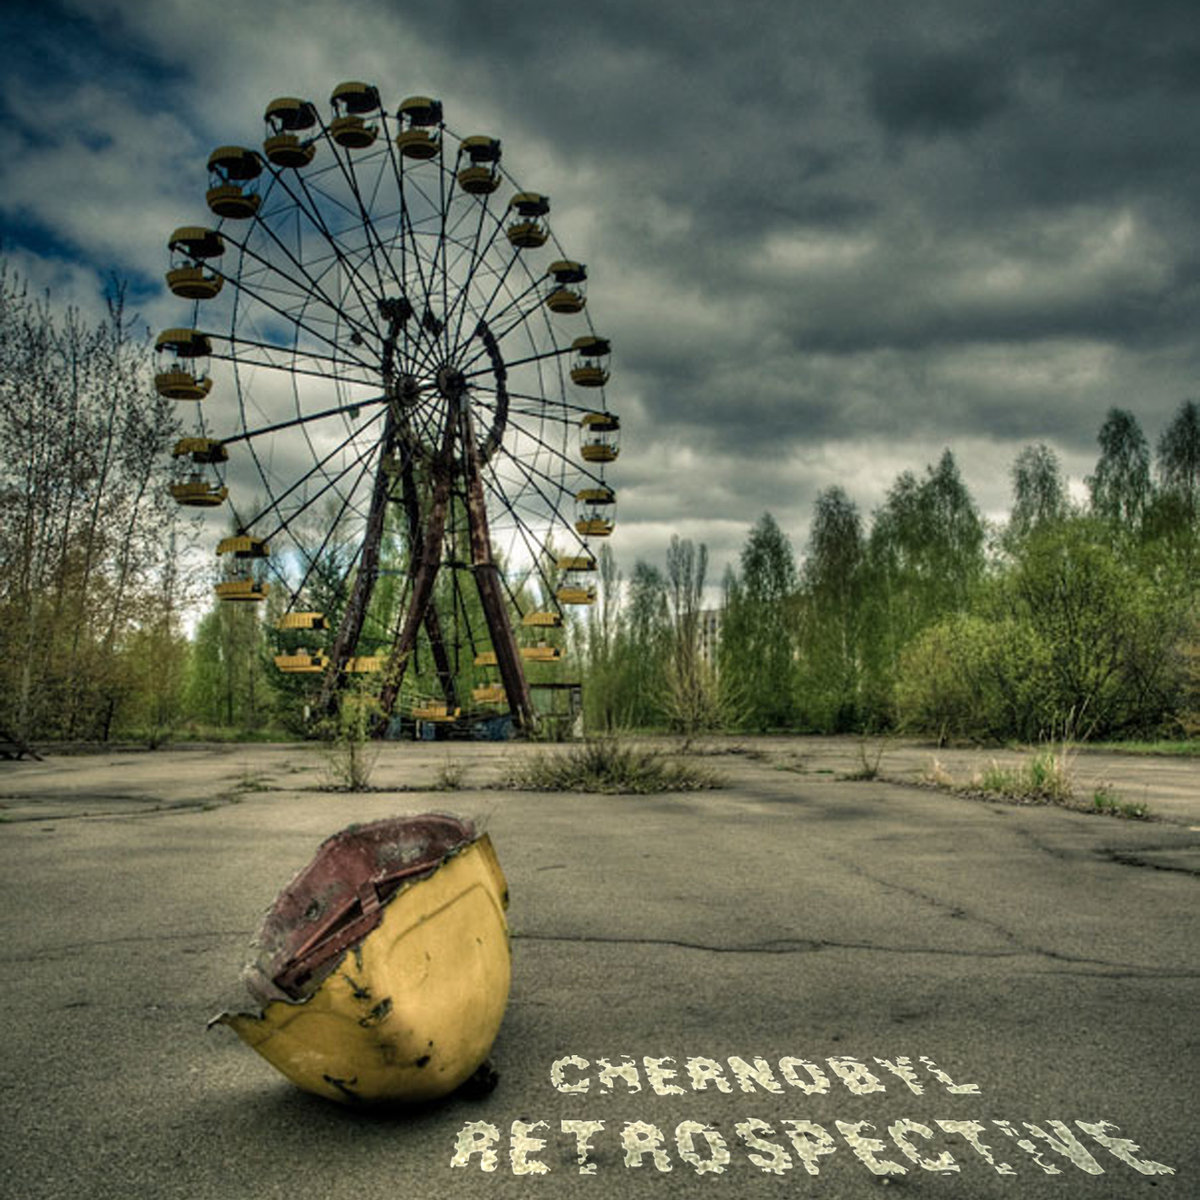 Fox - (Un) Justified Risk @ 'Various Artists - Chernobyl Retrospective' album (electronic, ambient)